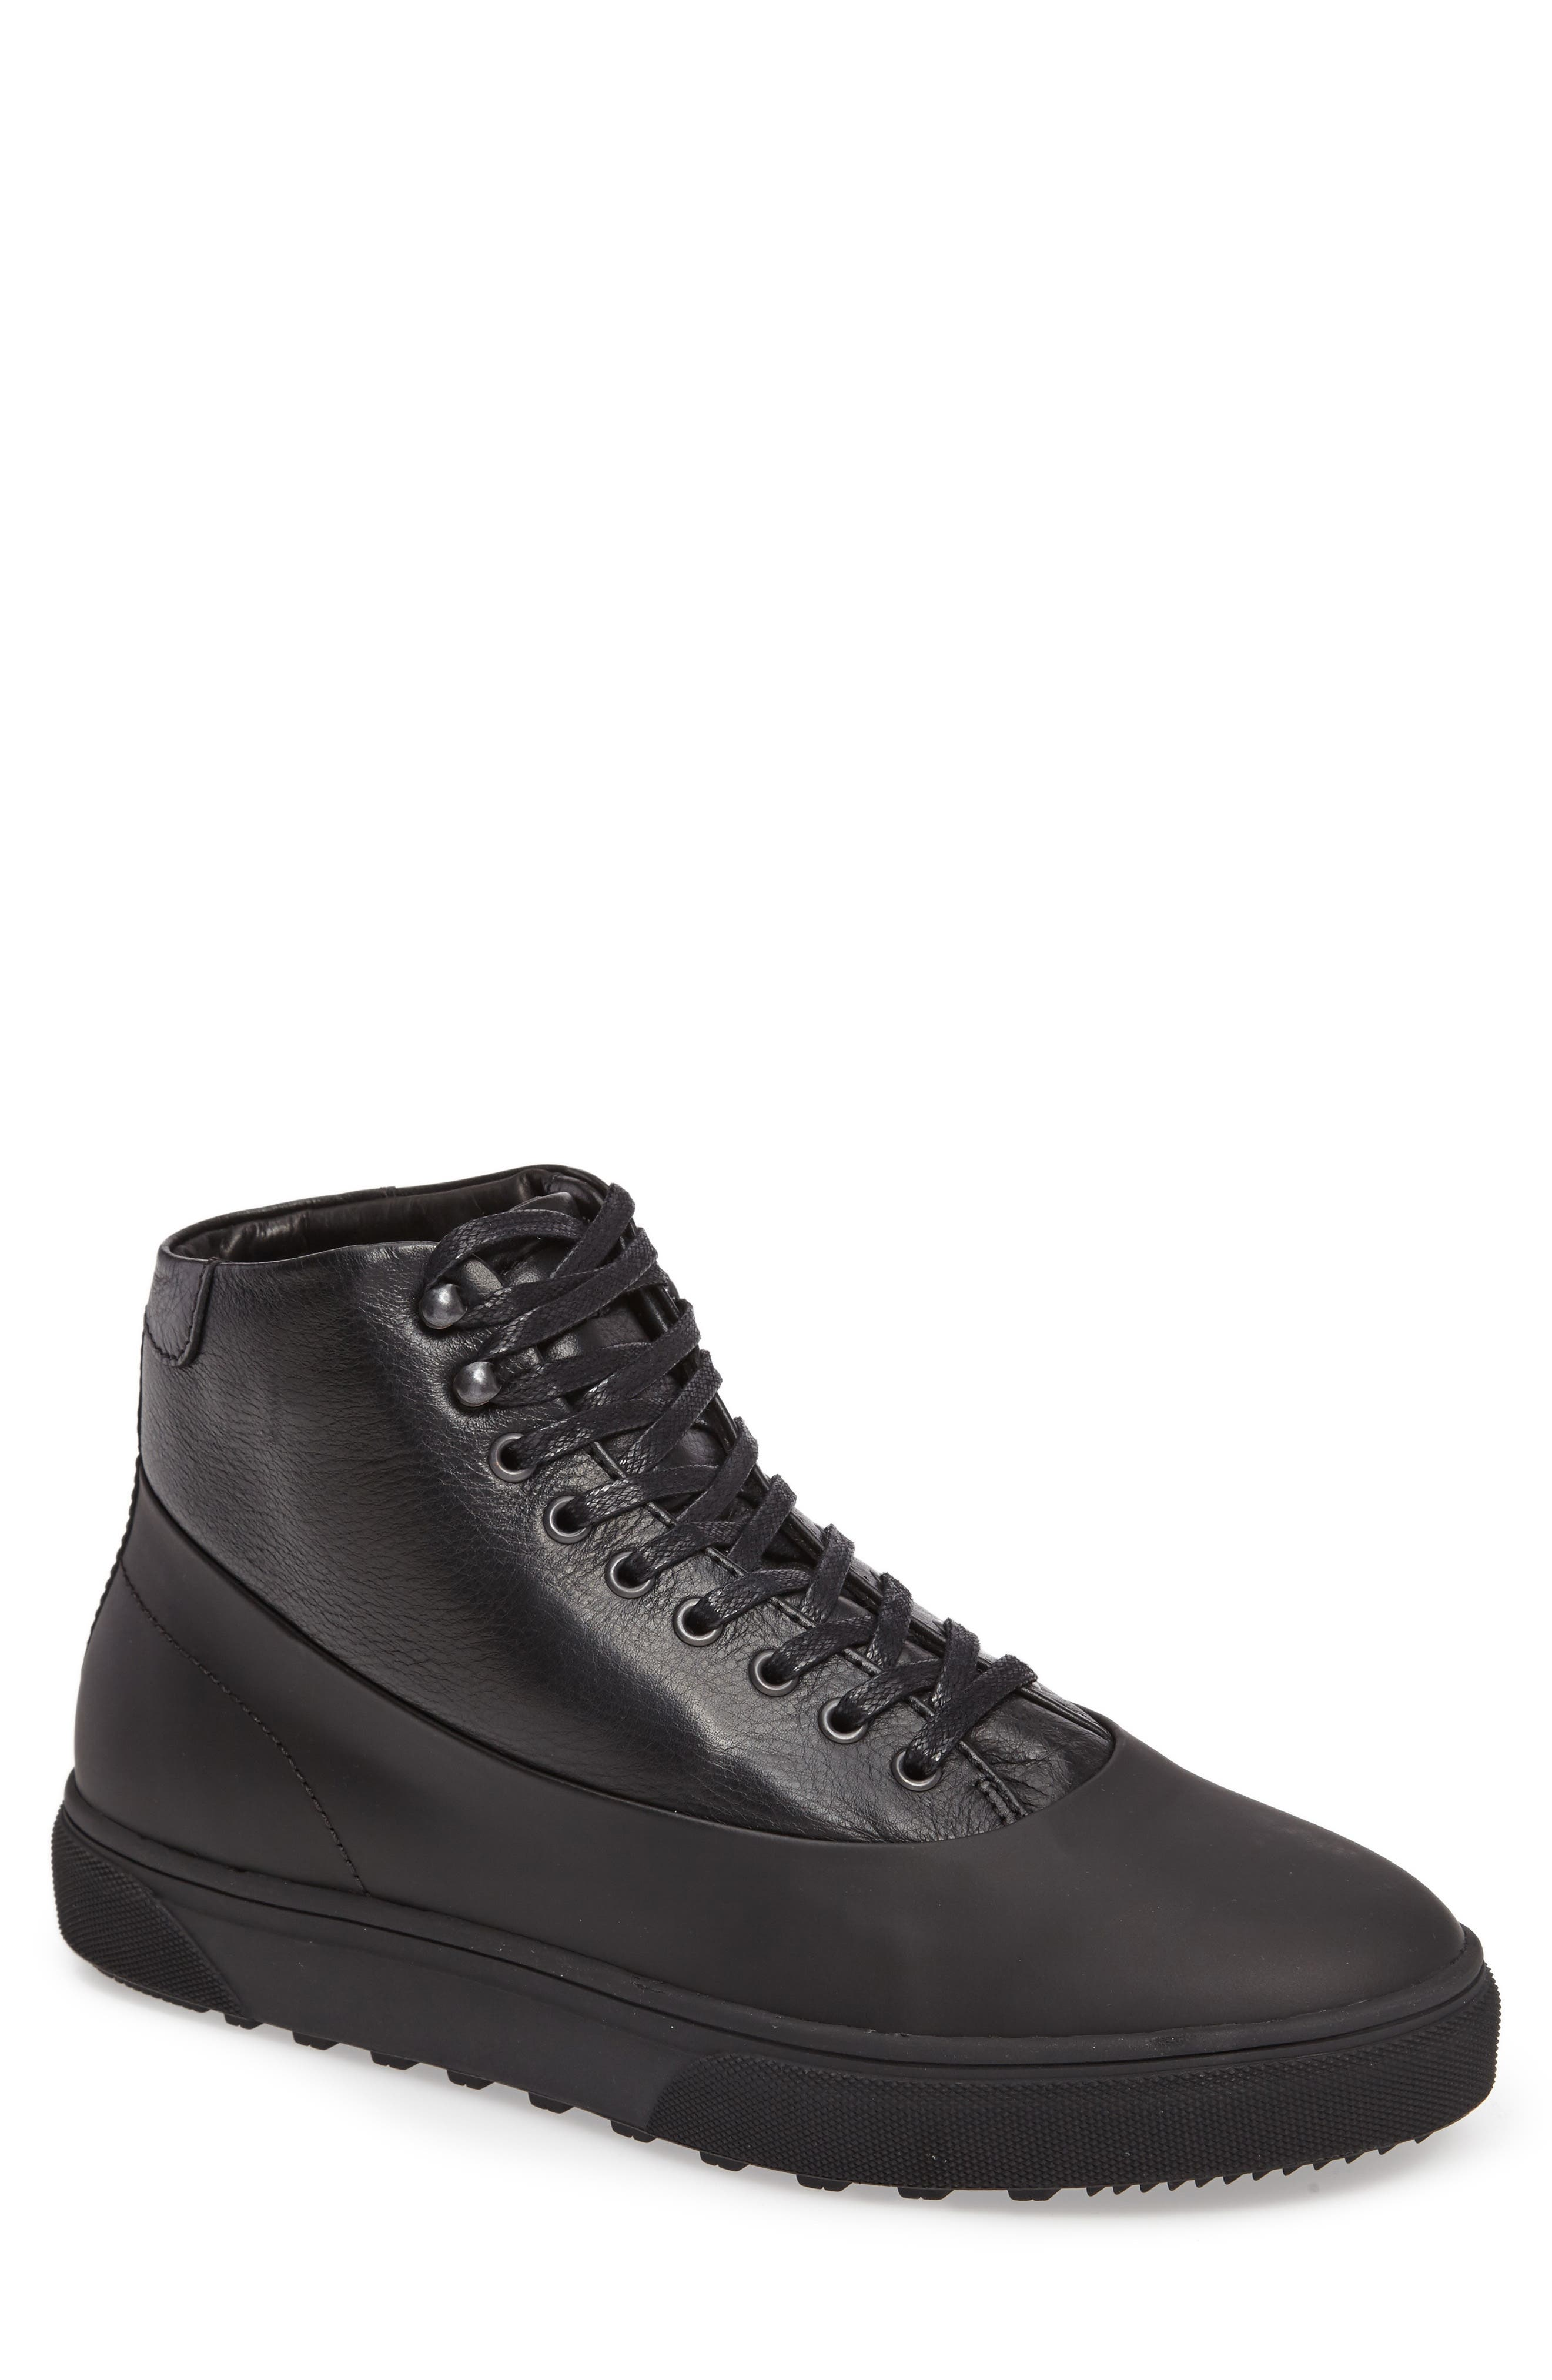 Wayland High Top Sneaker,                         Main,                         color,